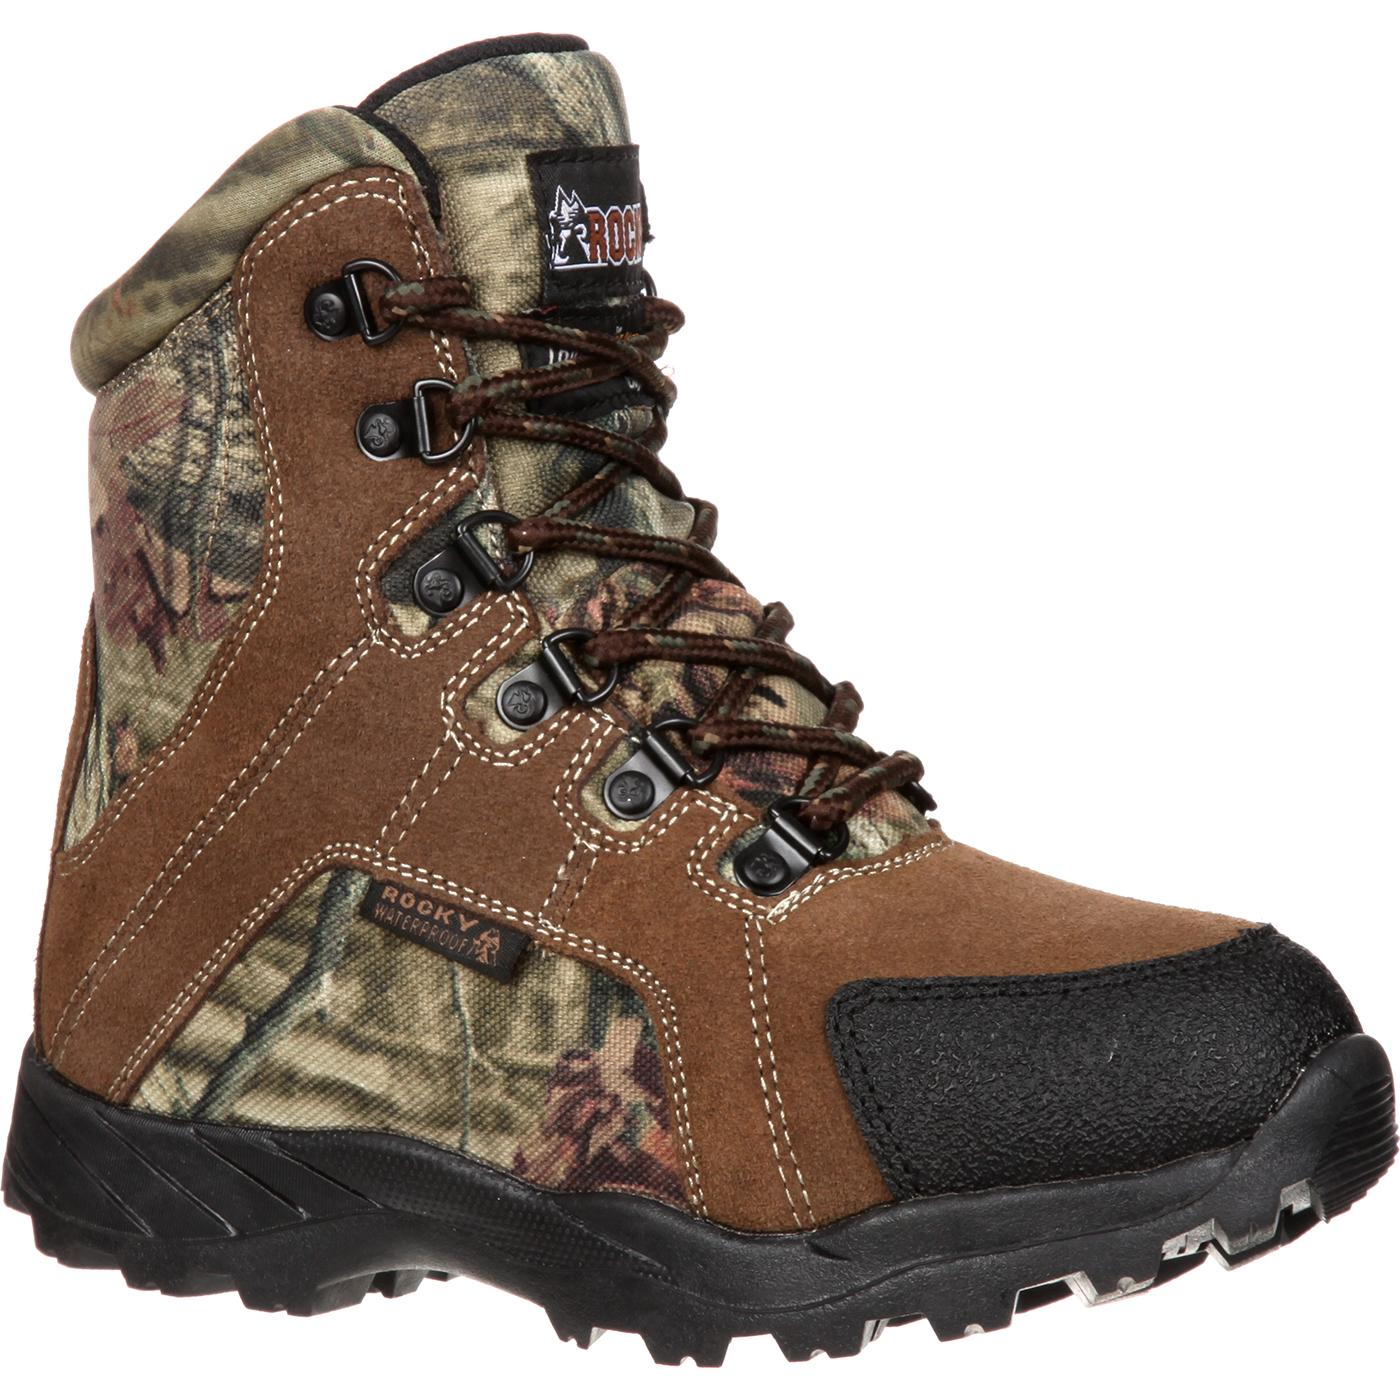 Rocky Kids Waterproof Insulated Camouflage Outdoor Boot